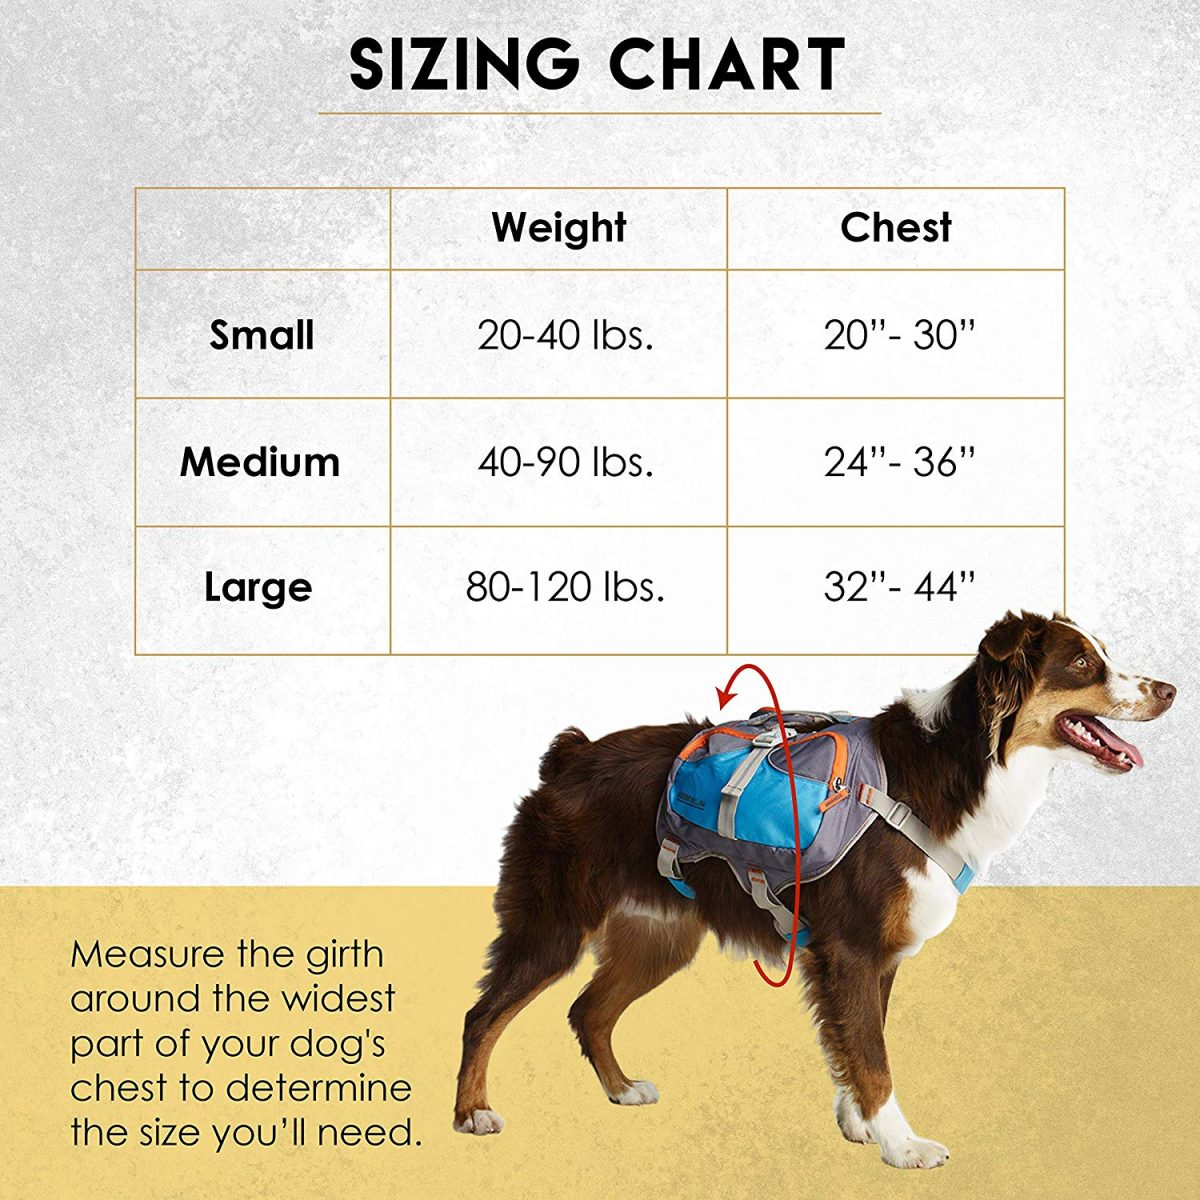 A sizing chart for the Cesar Millan dog backpack with small, medium, large sizes and their corresponding specifications as to weight and chest measurement, with a medium sized dog in front of the chart wearing the blue dog backpack